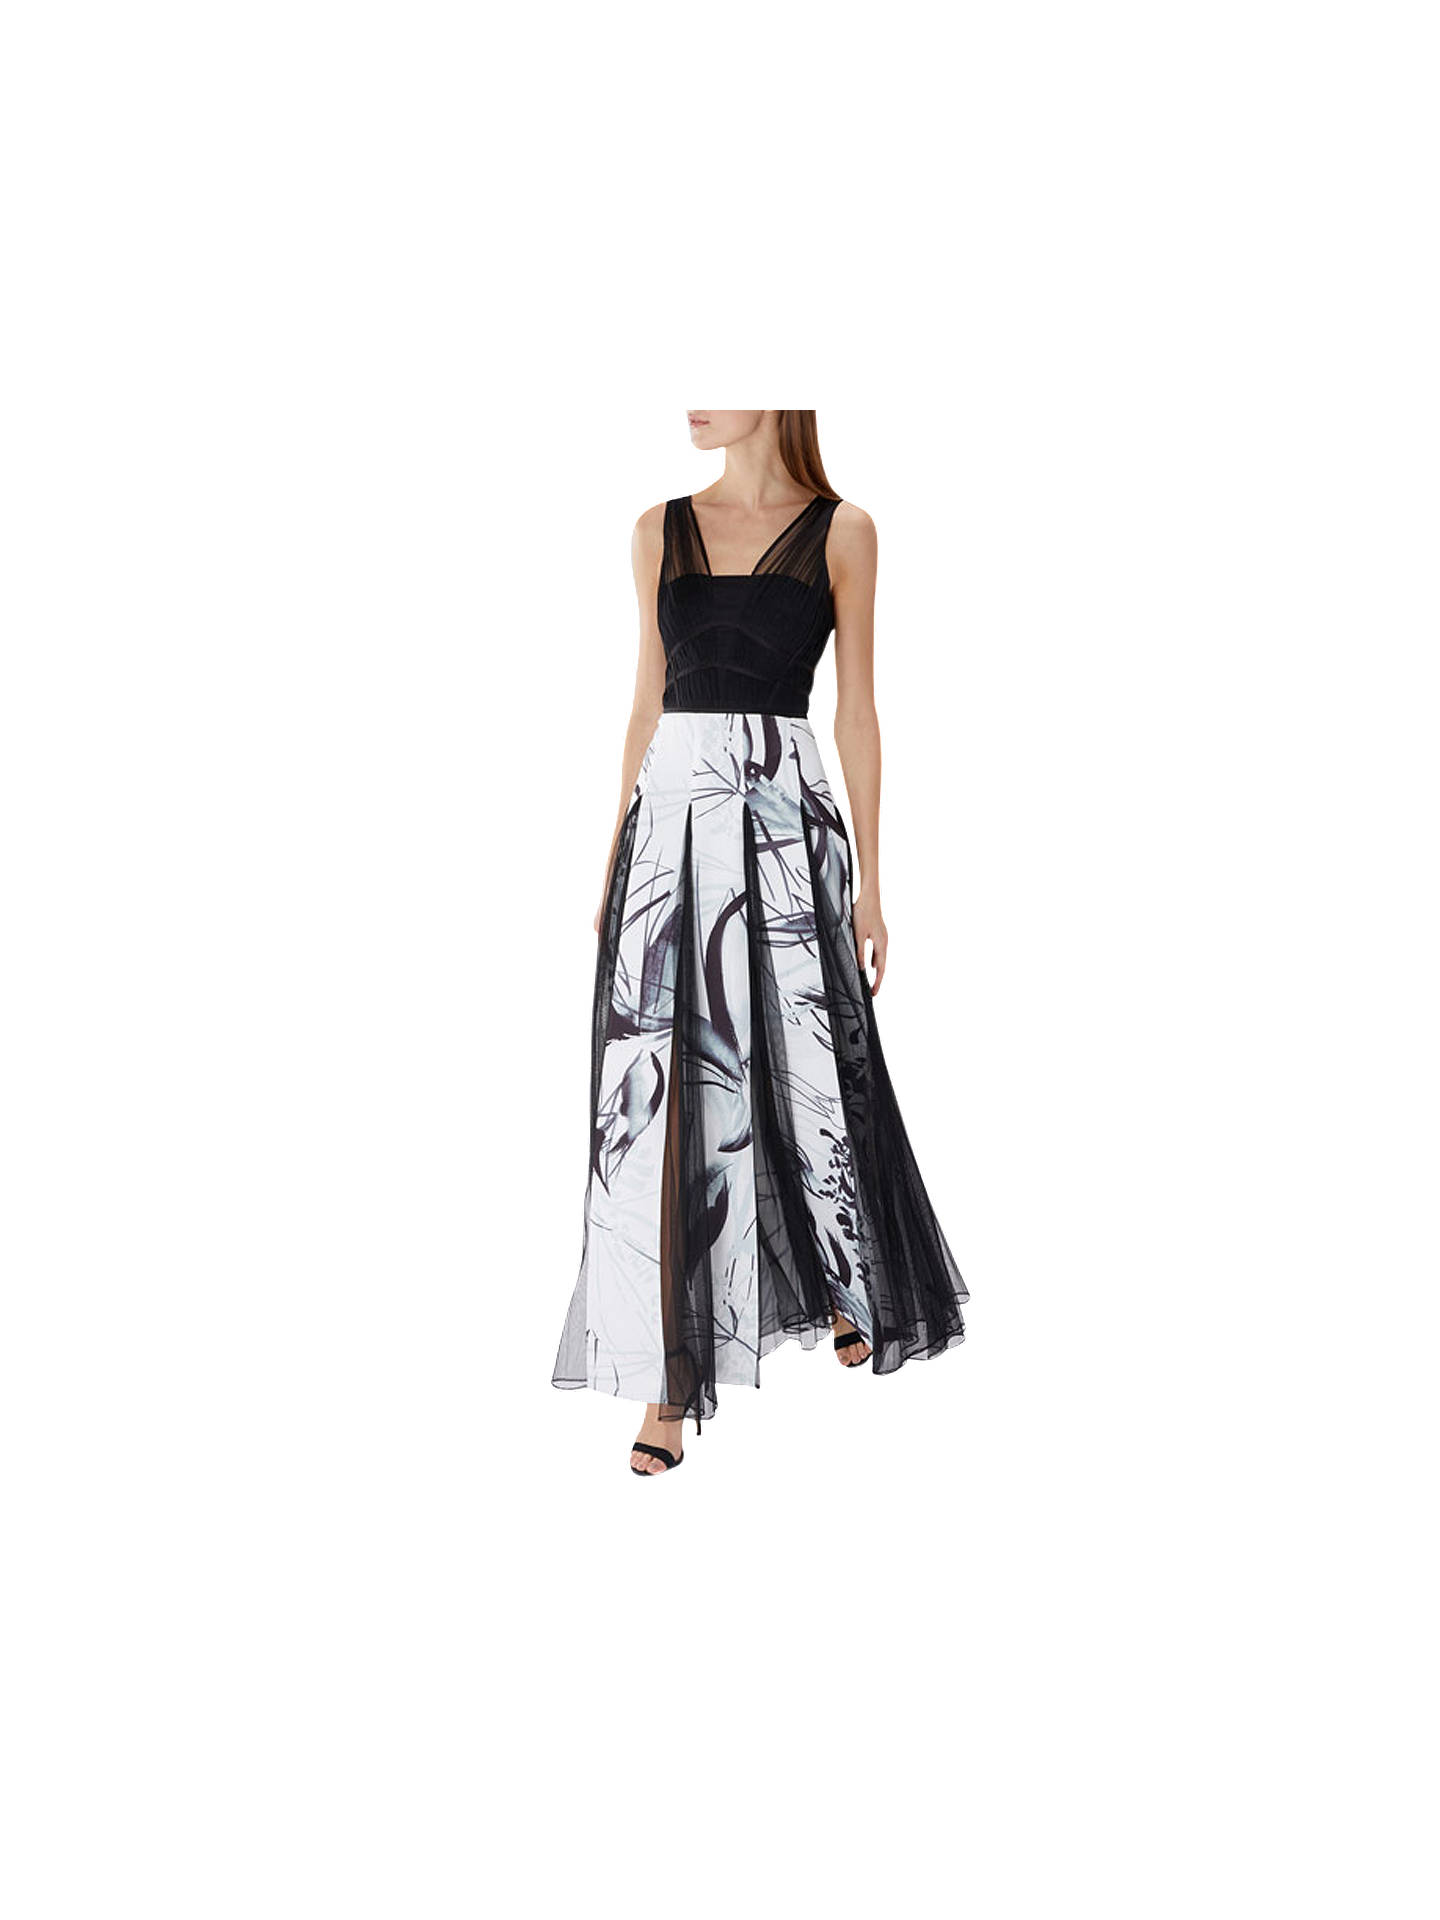 BuyCoast Sassi Maxi Dress, Black/White, 6 Online at johnlewis.com